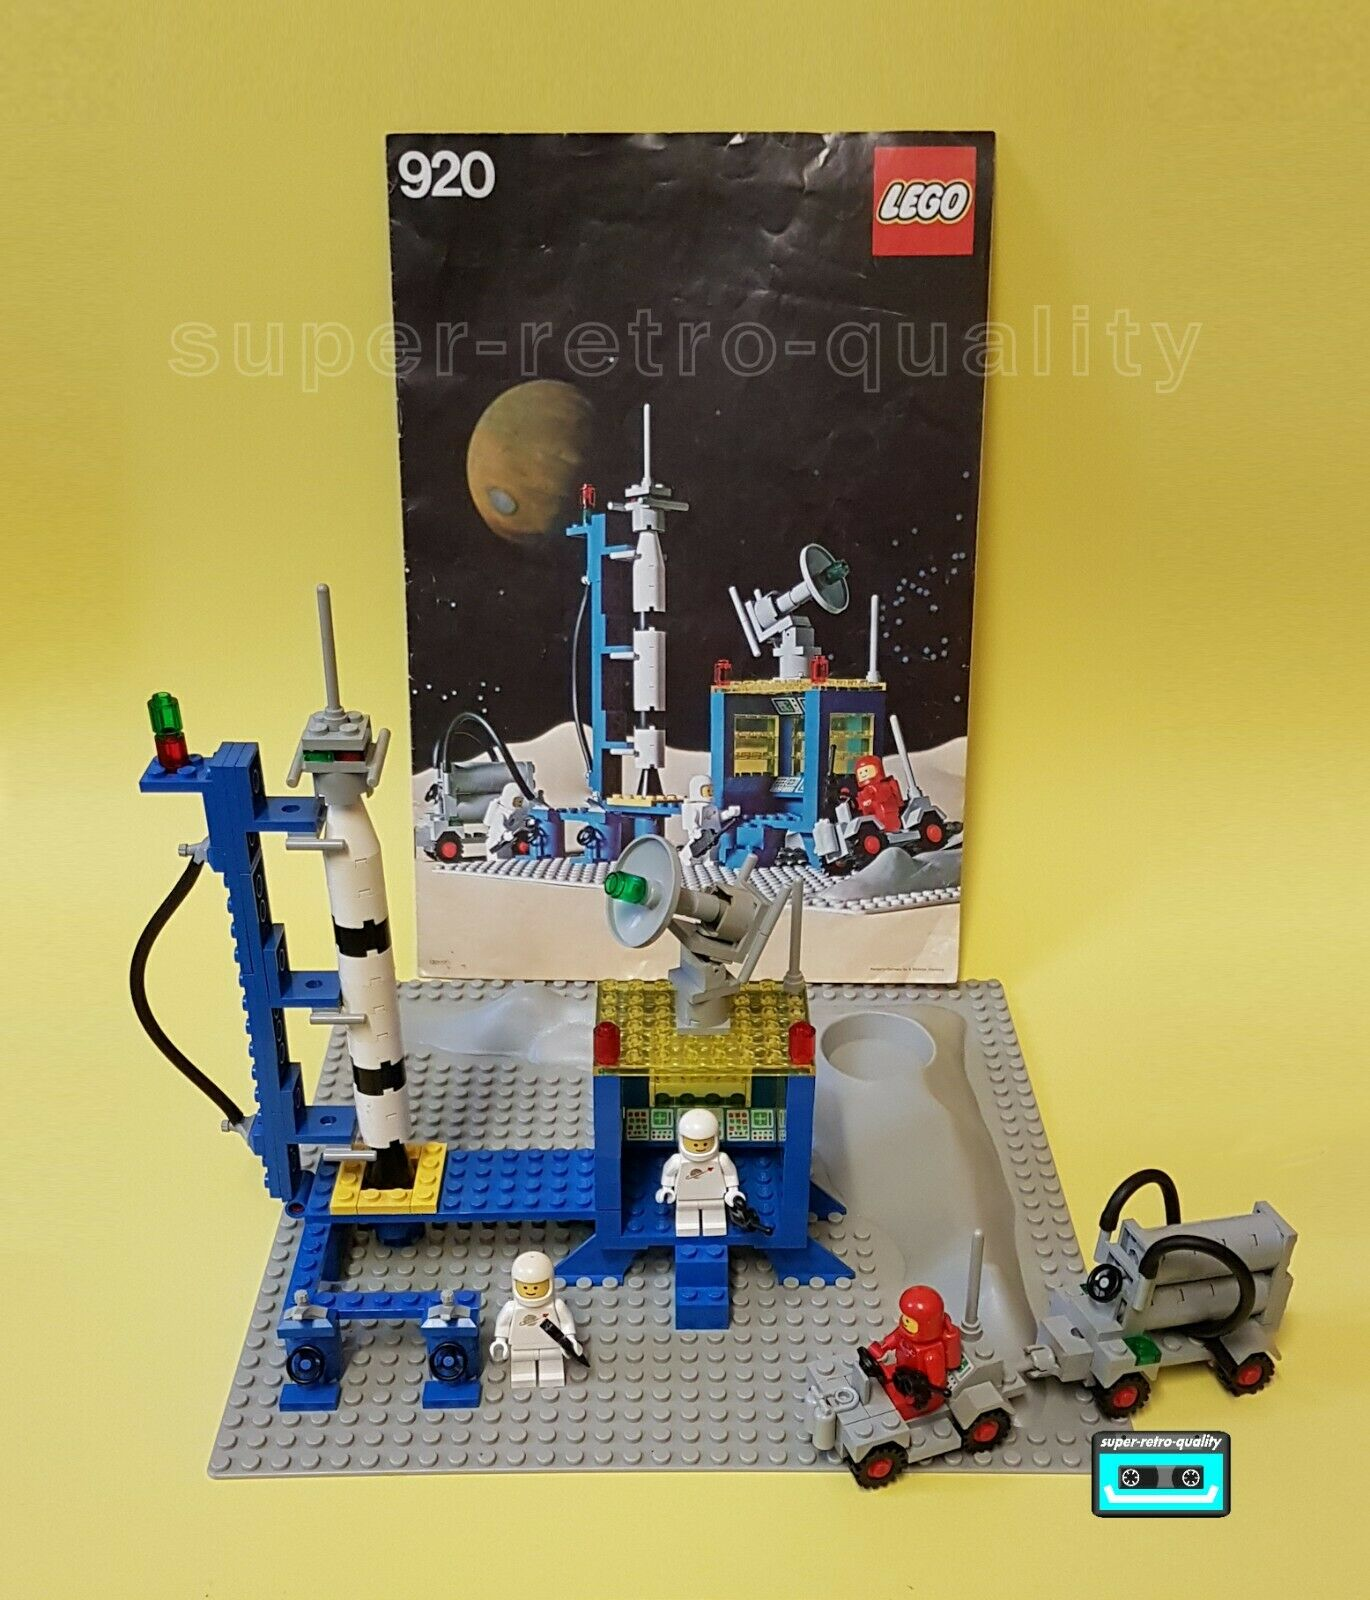 LEGO CLASSIC SPACE ALPHA 1 COMPLETE WITH ORIGINAL INSTRUCTIONS